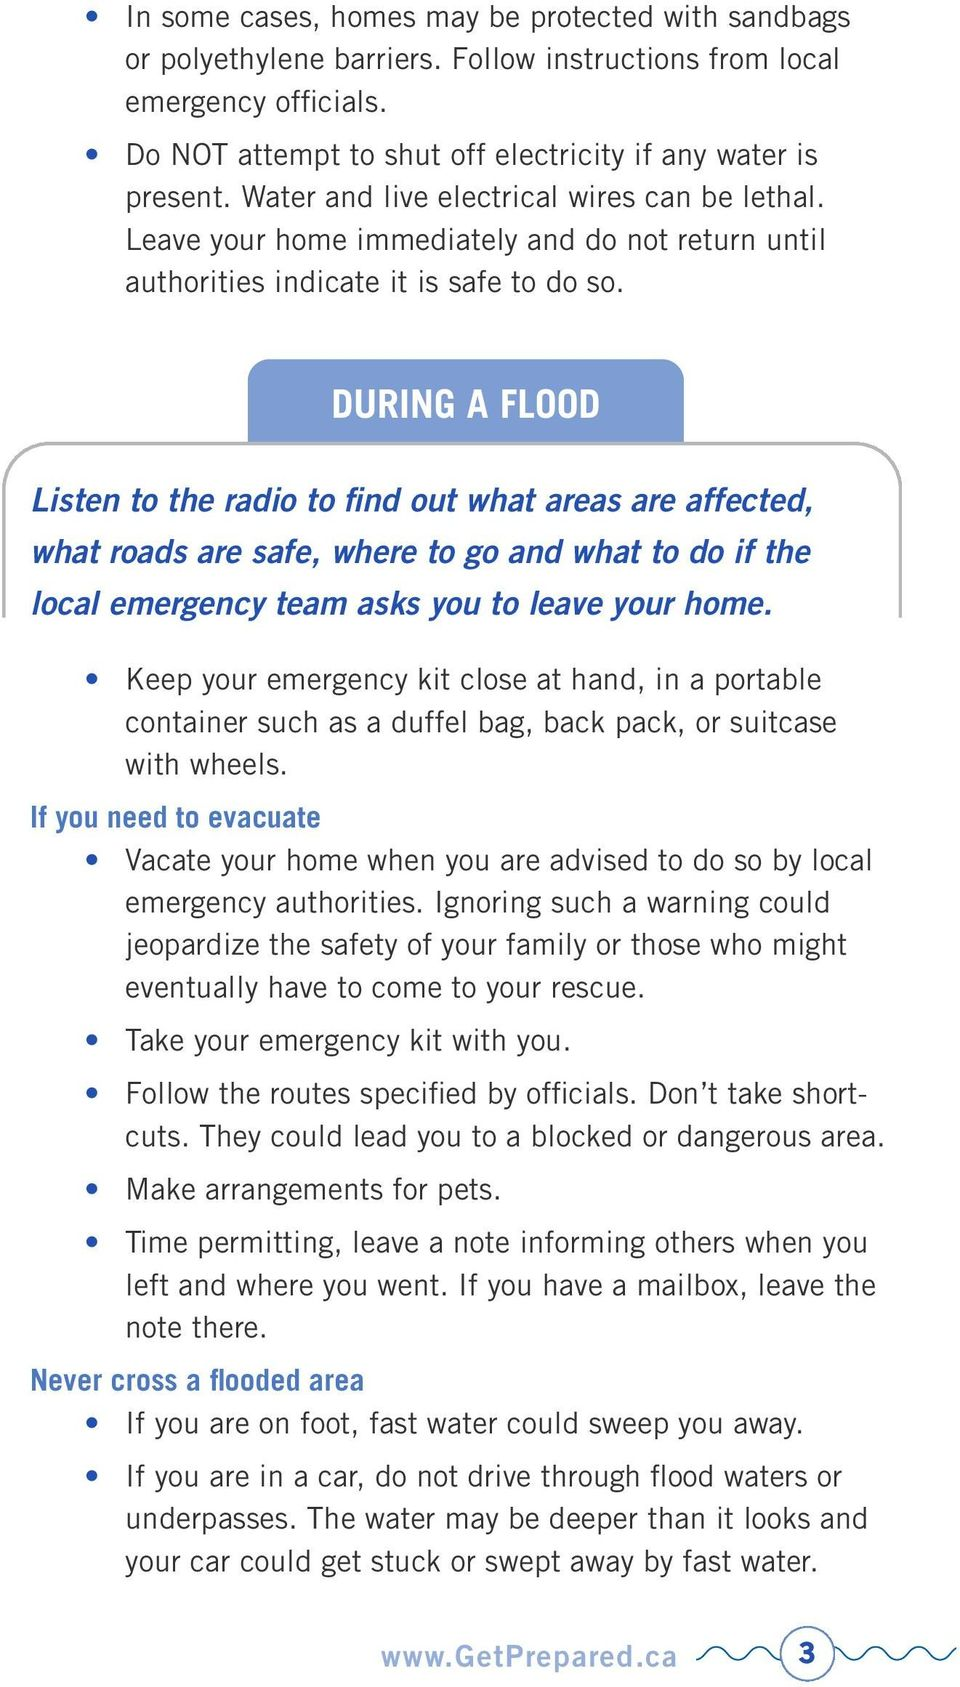 DURING A FLOOD Listen to the radio to find out what areas are affected, what roads are safe, where to go and what to do if the local emergency team asks you to leave your home.